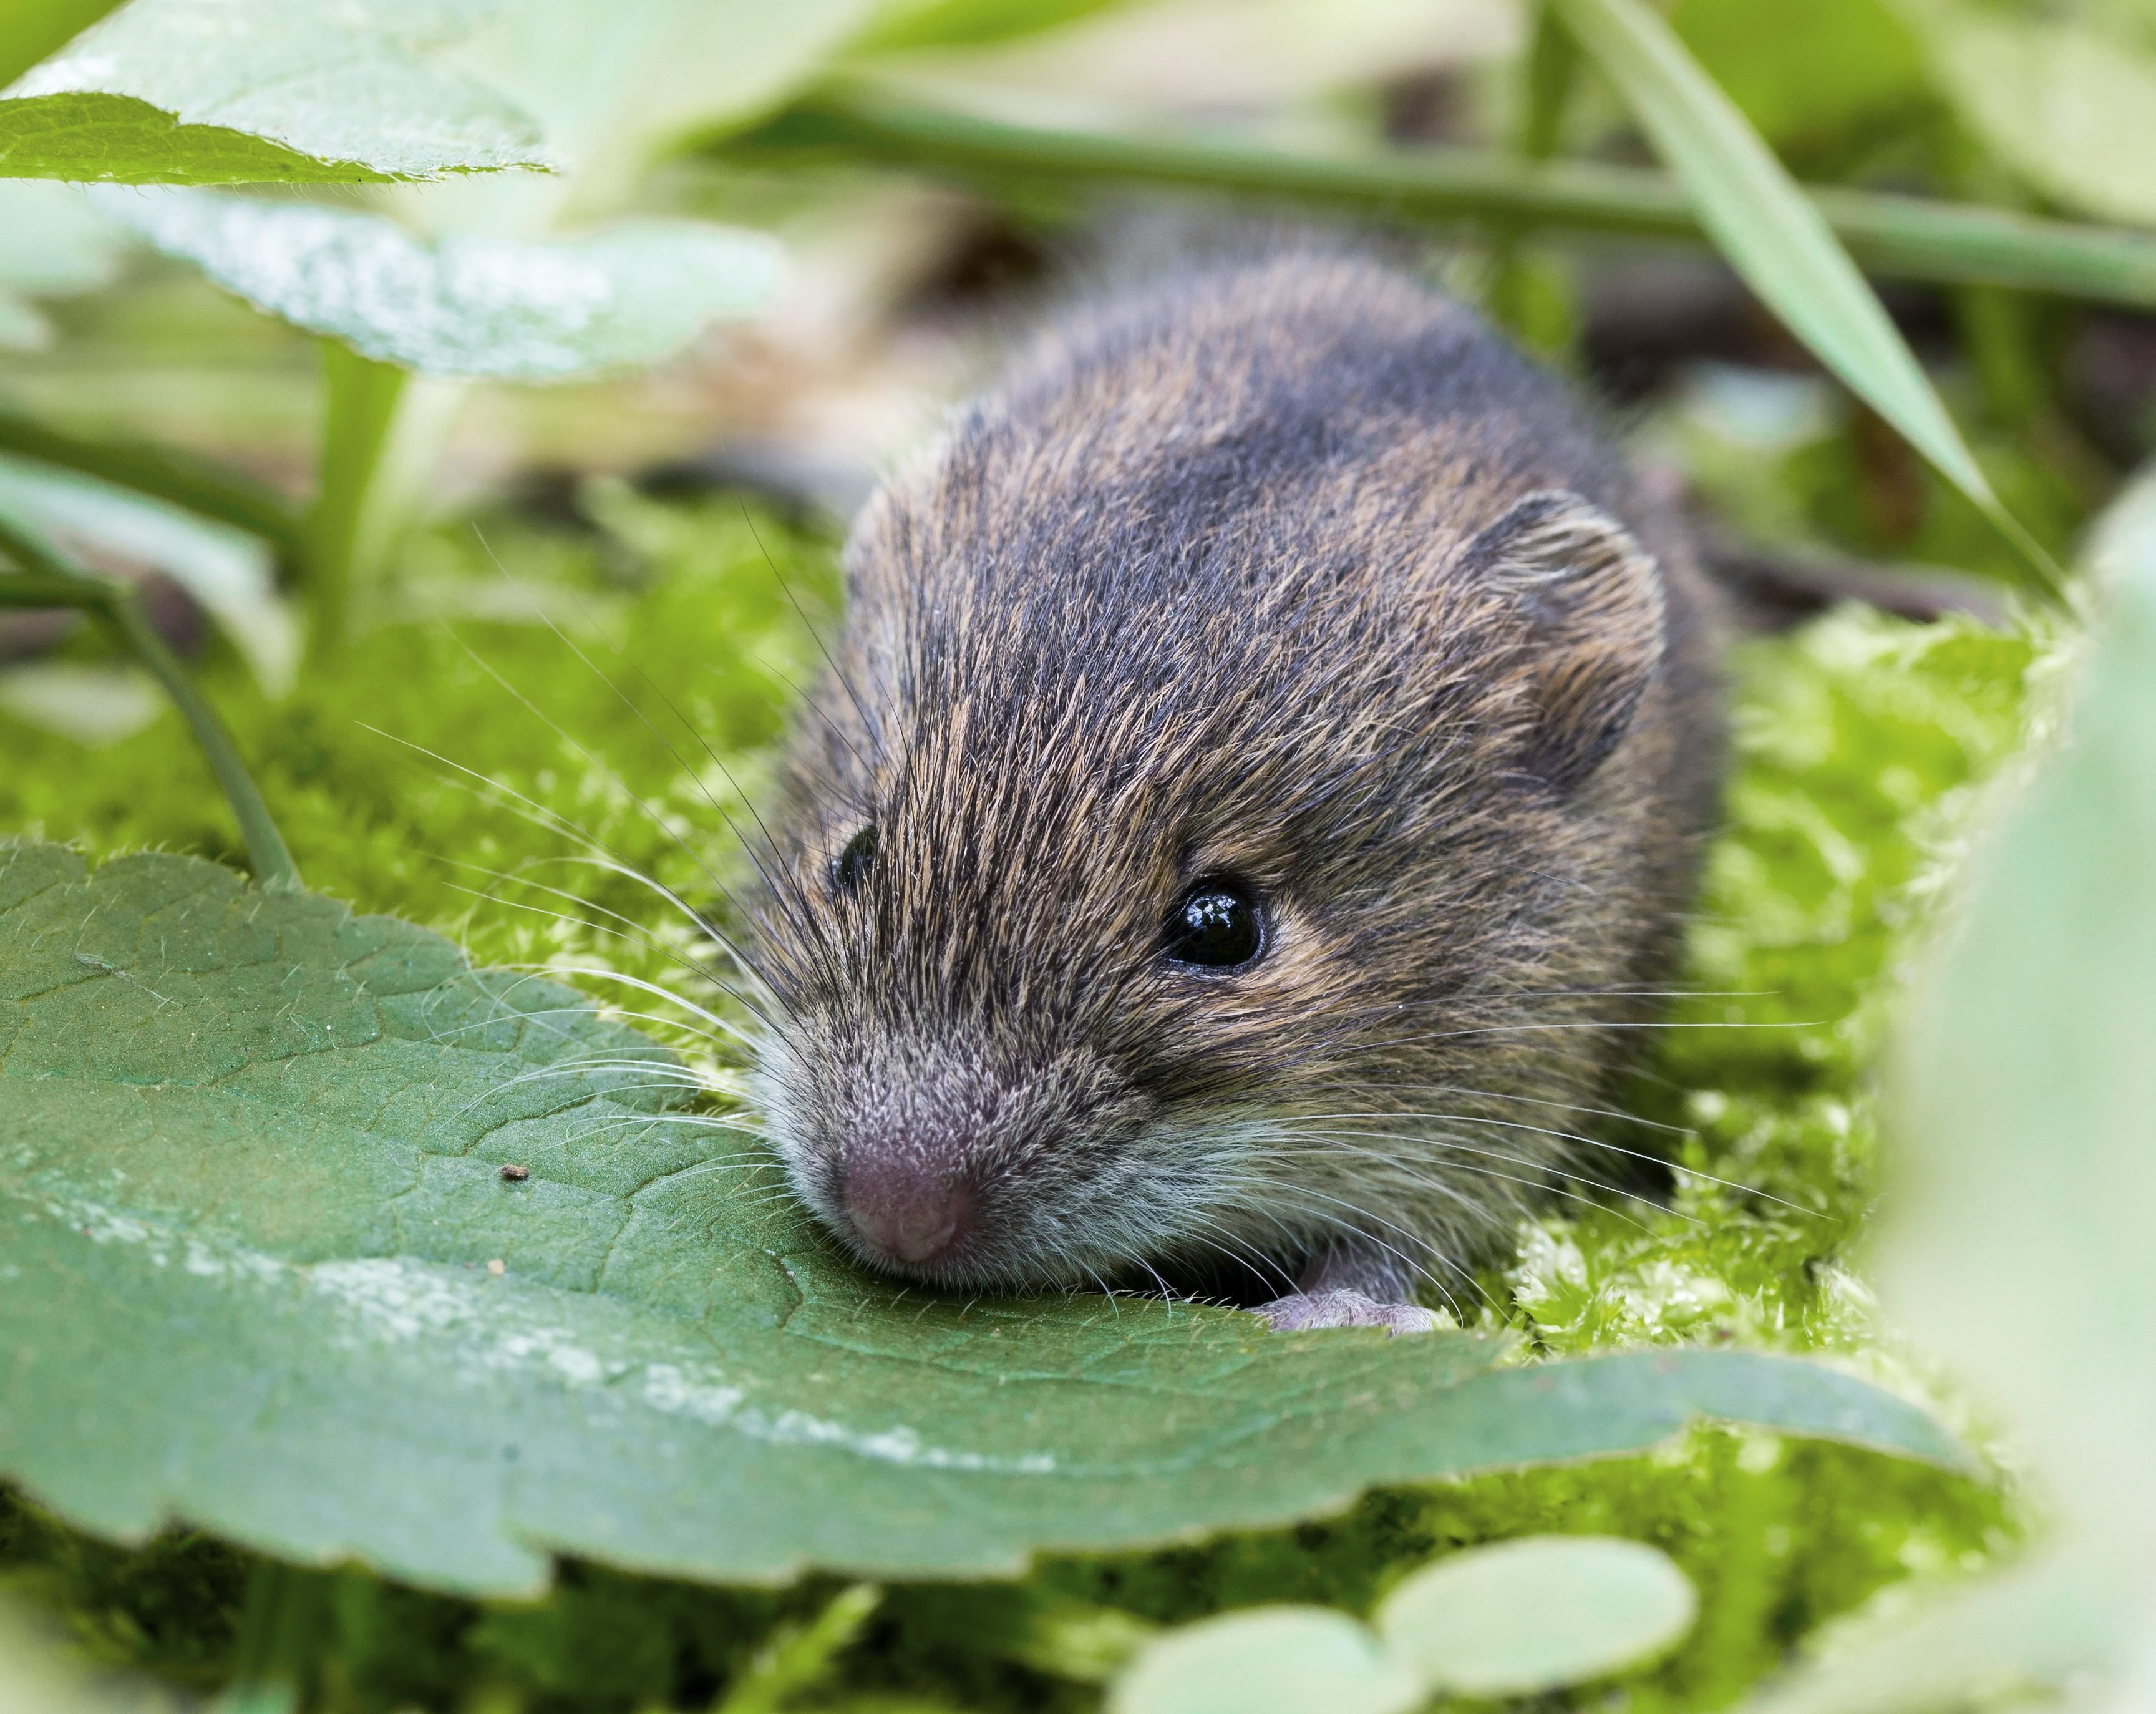 forest birch mouse (Sicista betulina) small in its natural habitat.; Shutterstock ID 650589304; Job (TFH, TOH, RD, BNB, CWM, CM): -